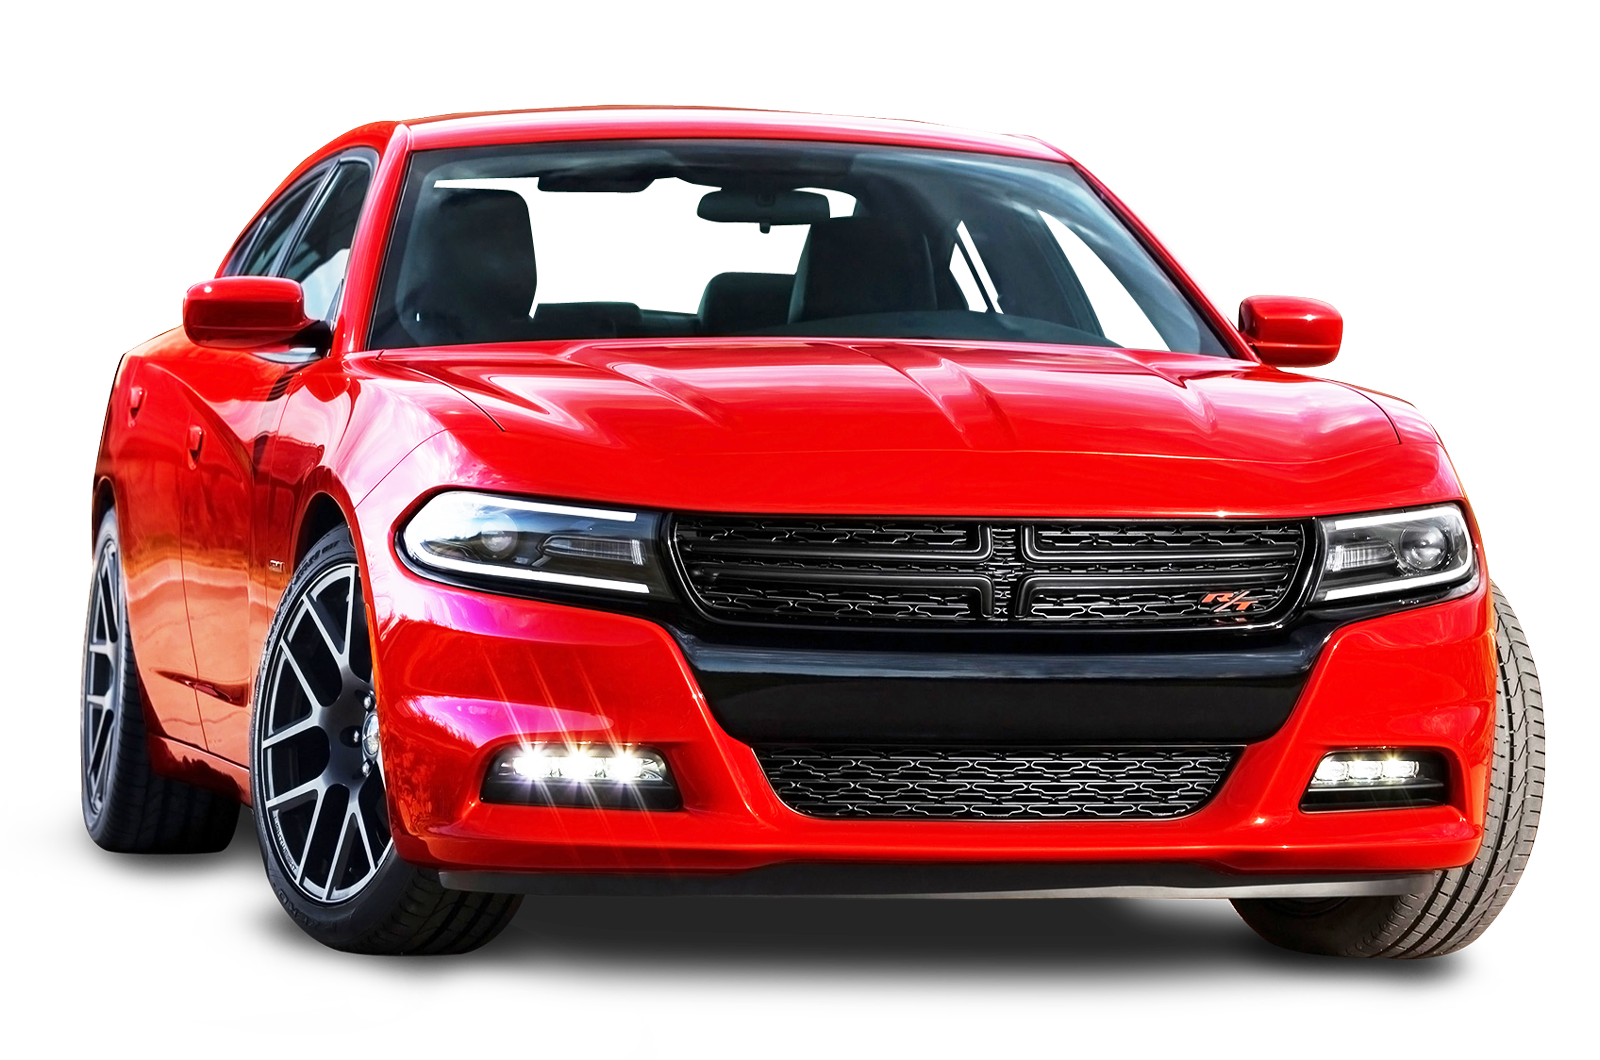 Dodge Charger Car Png Image Dodge Charger Charger Car Classic Cars